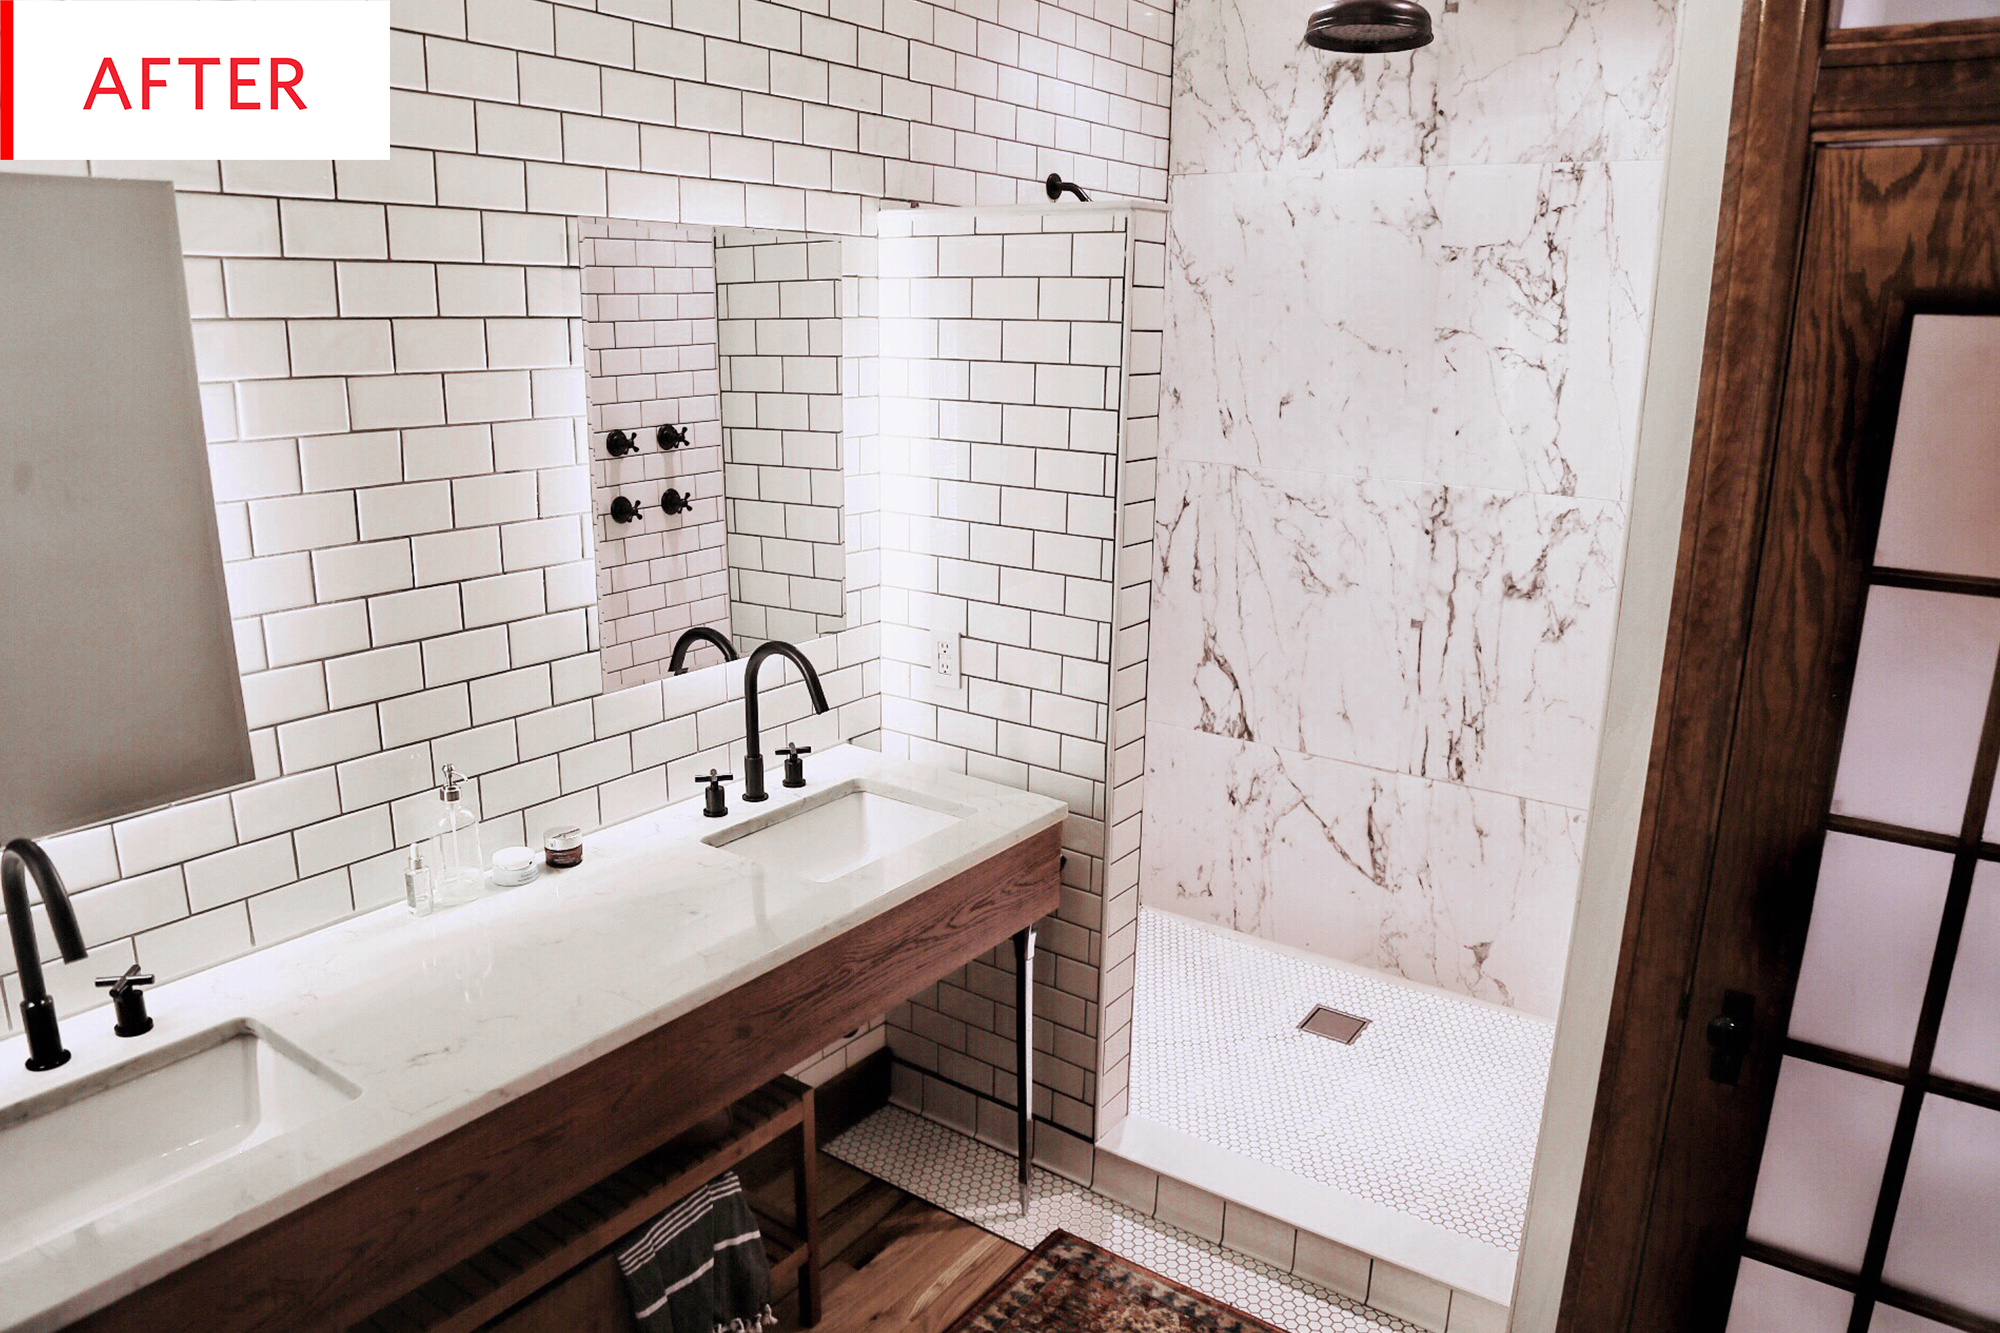 Before and After This $3K Bathroom Redo Feels More Like $50K I love this whole bathroom so much